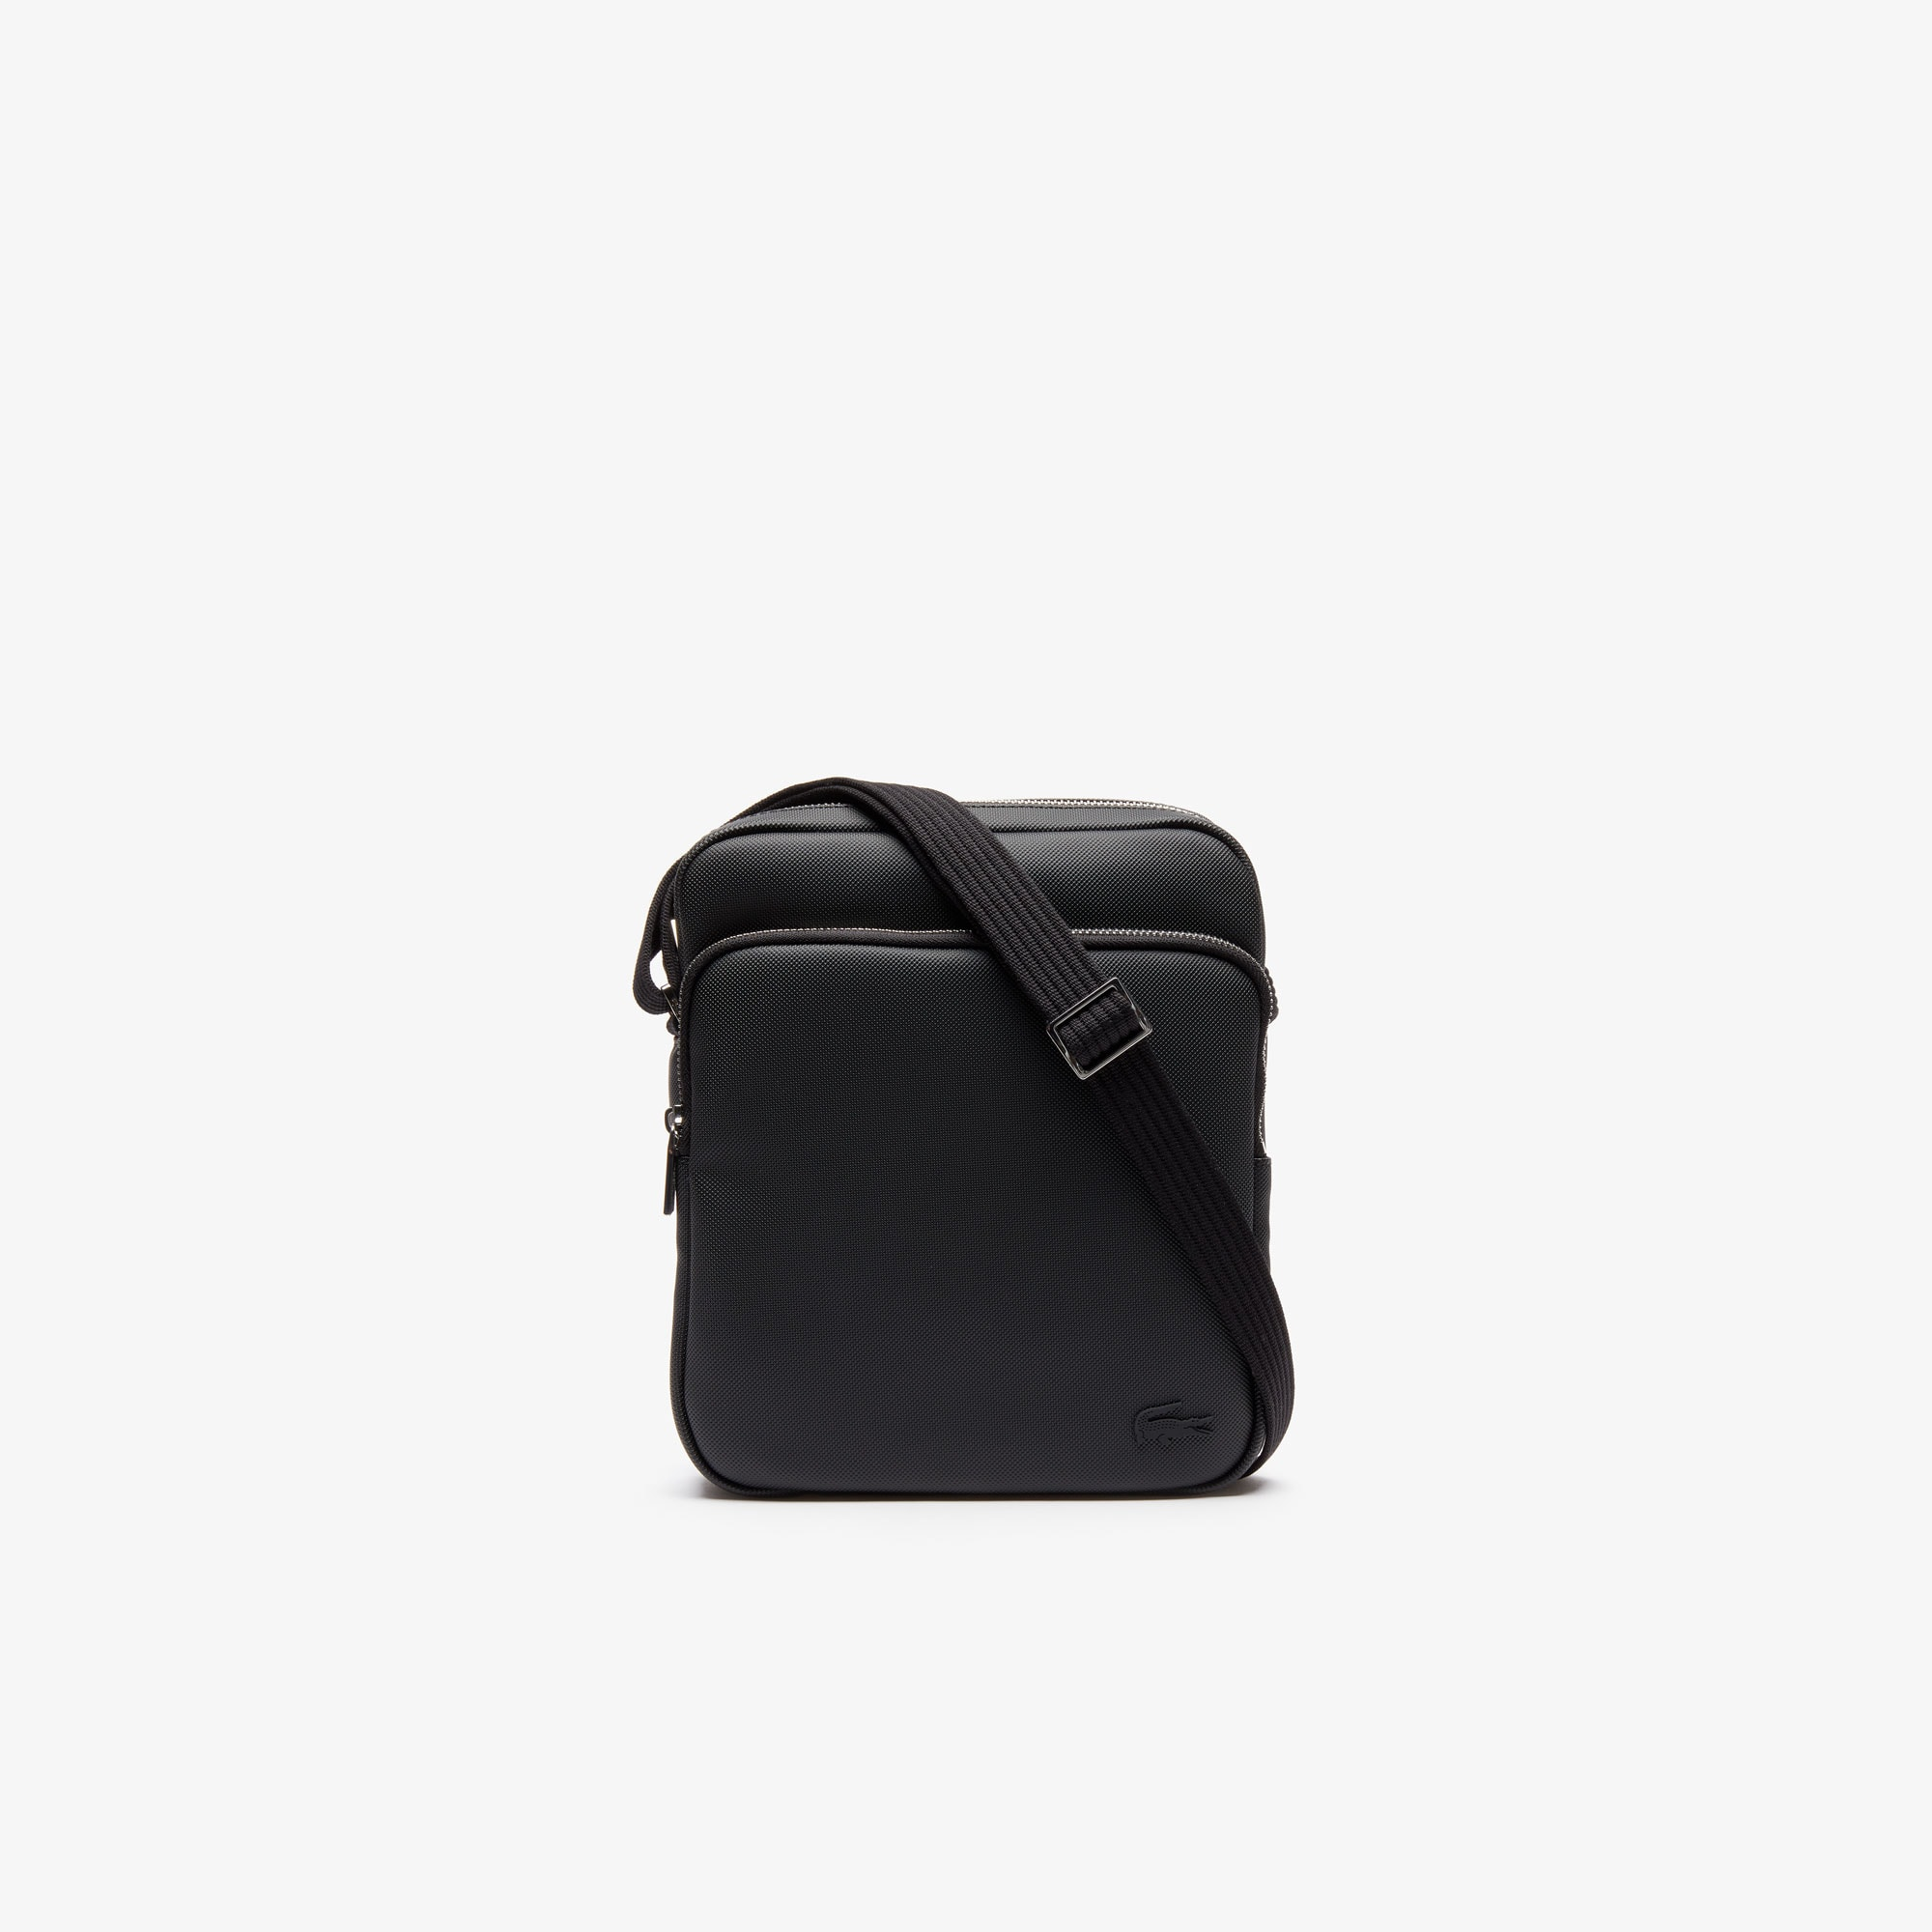 라코스테 메신저백 Lacoste Mens Classic Petit Pique Crossover Bag,black